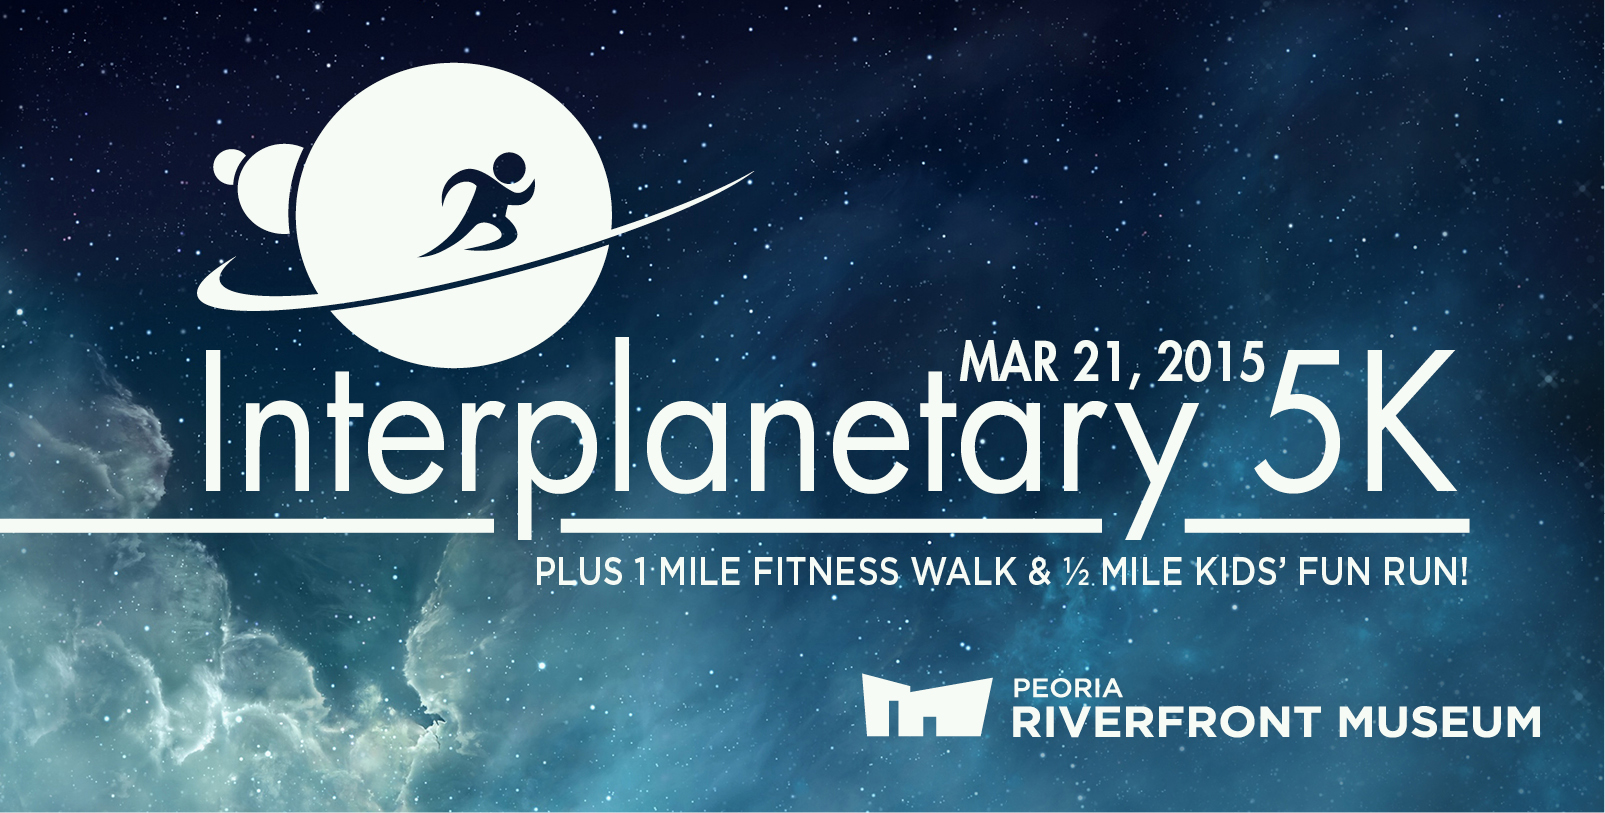 15_06_47_159_interplanetary5k_webbanner